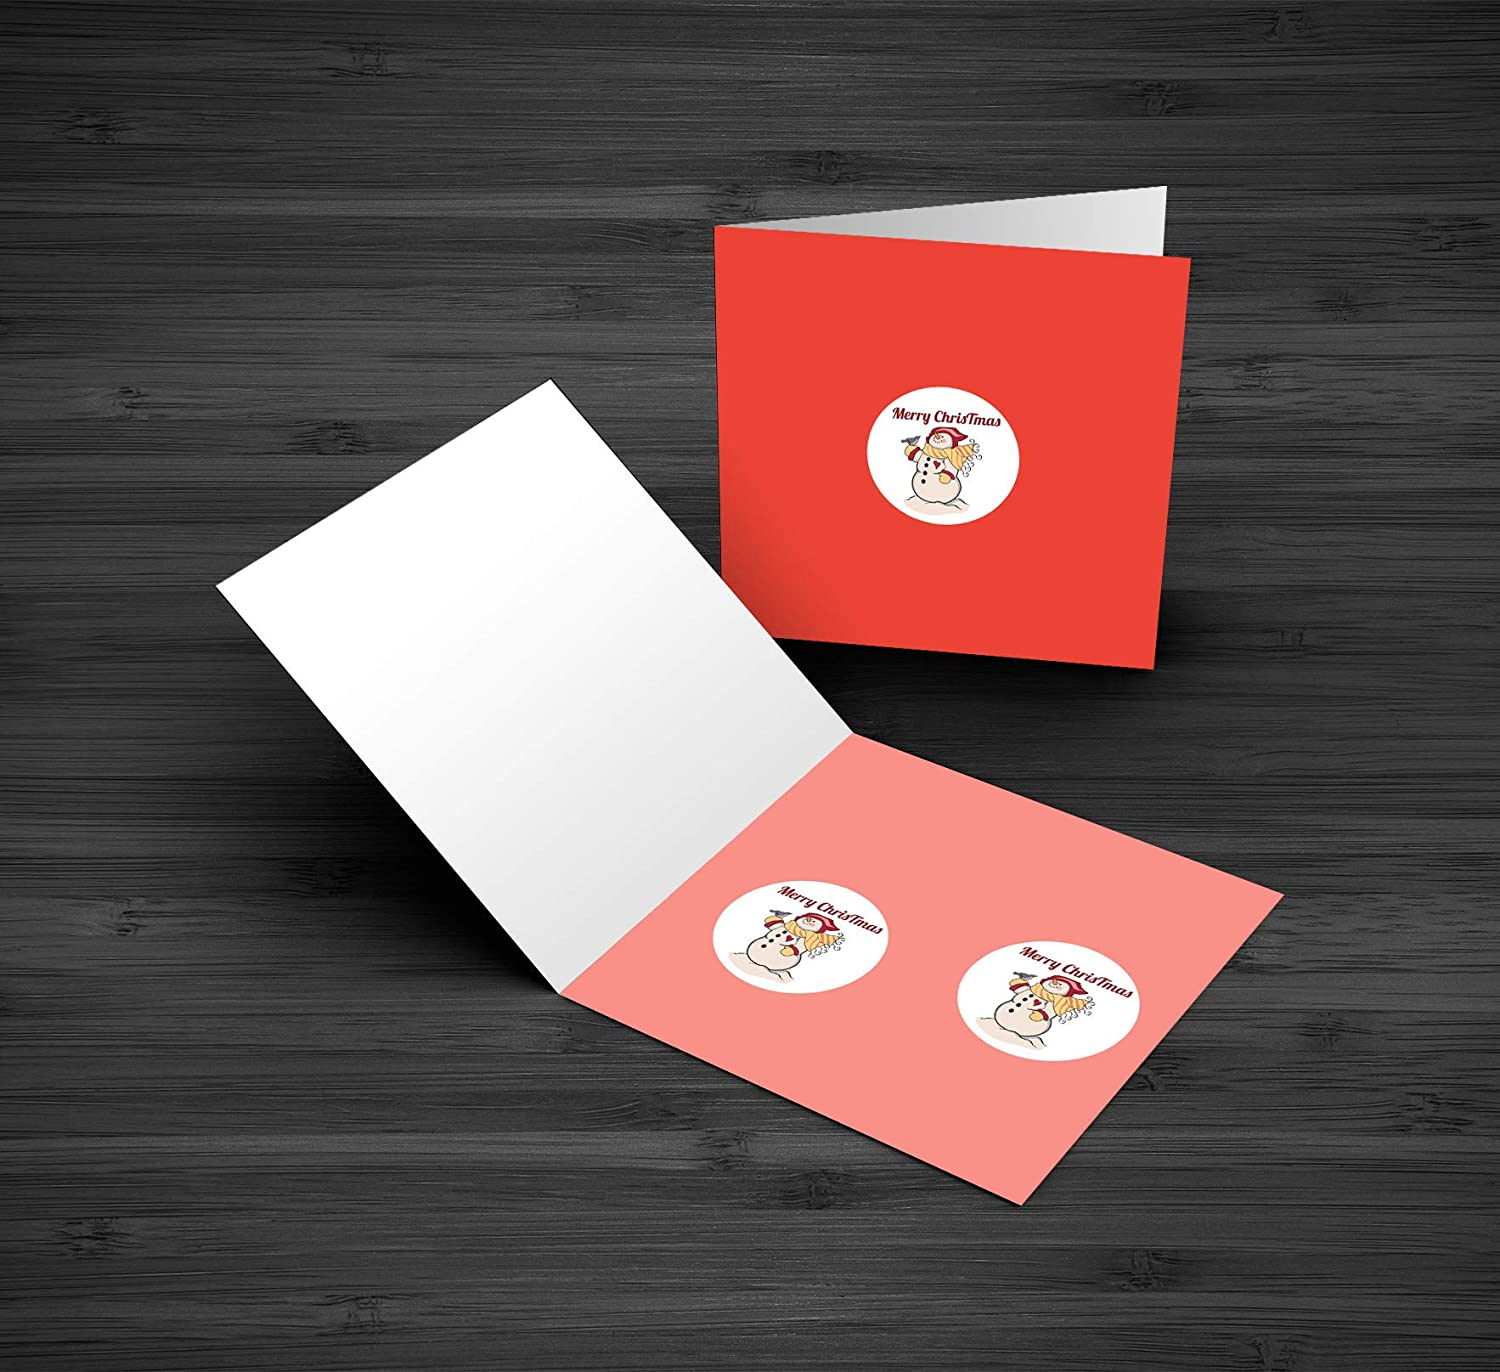 Edward /& Co Set of 40 Sticker Merry Christmas Snowman Decal Small Phone Mini Logo Birthday Parties Envelopes Labels Seals Shower Favor 1.2 inches Each